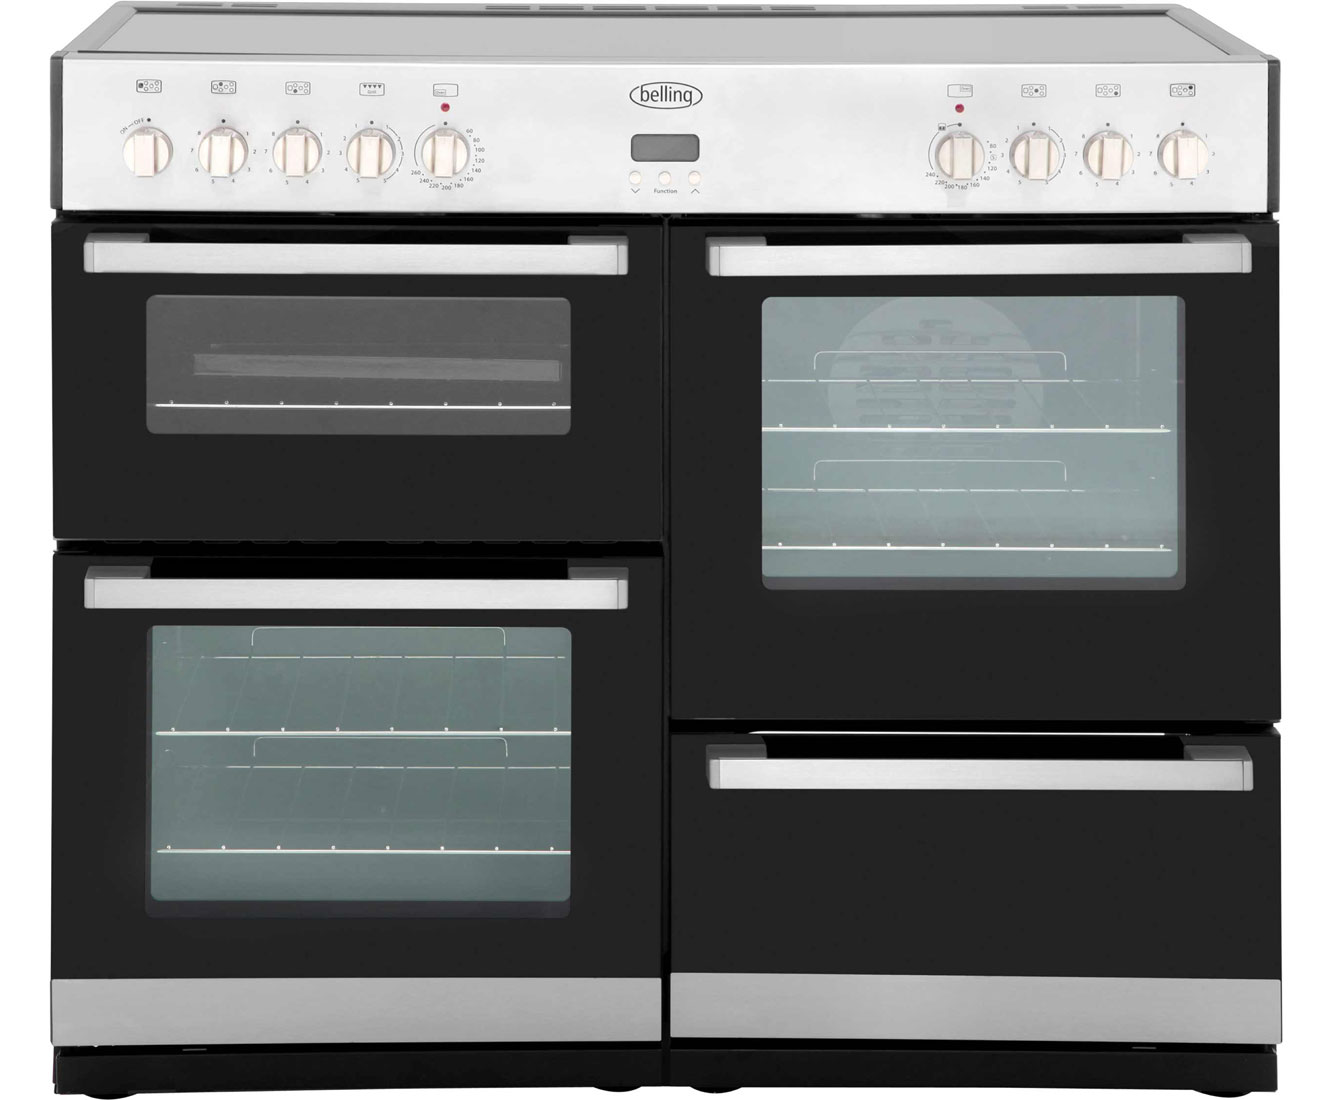 Belling DB4100E 100cm Electric Range Cooker with Ceramic Hob - Stainless Steel / Black